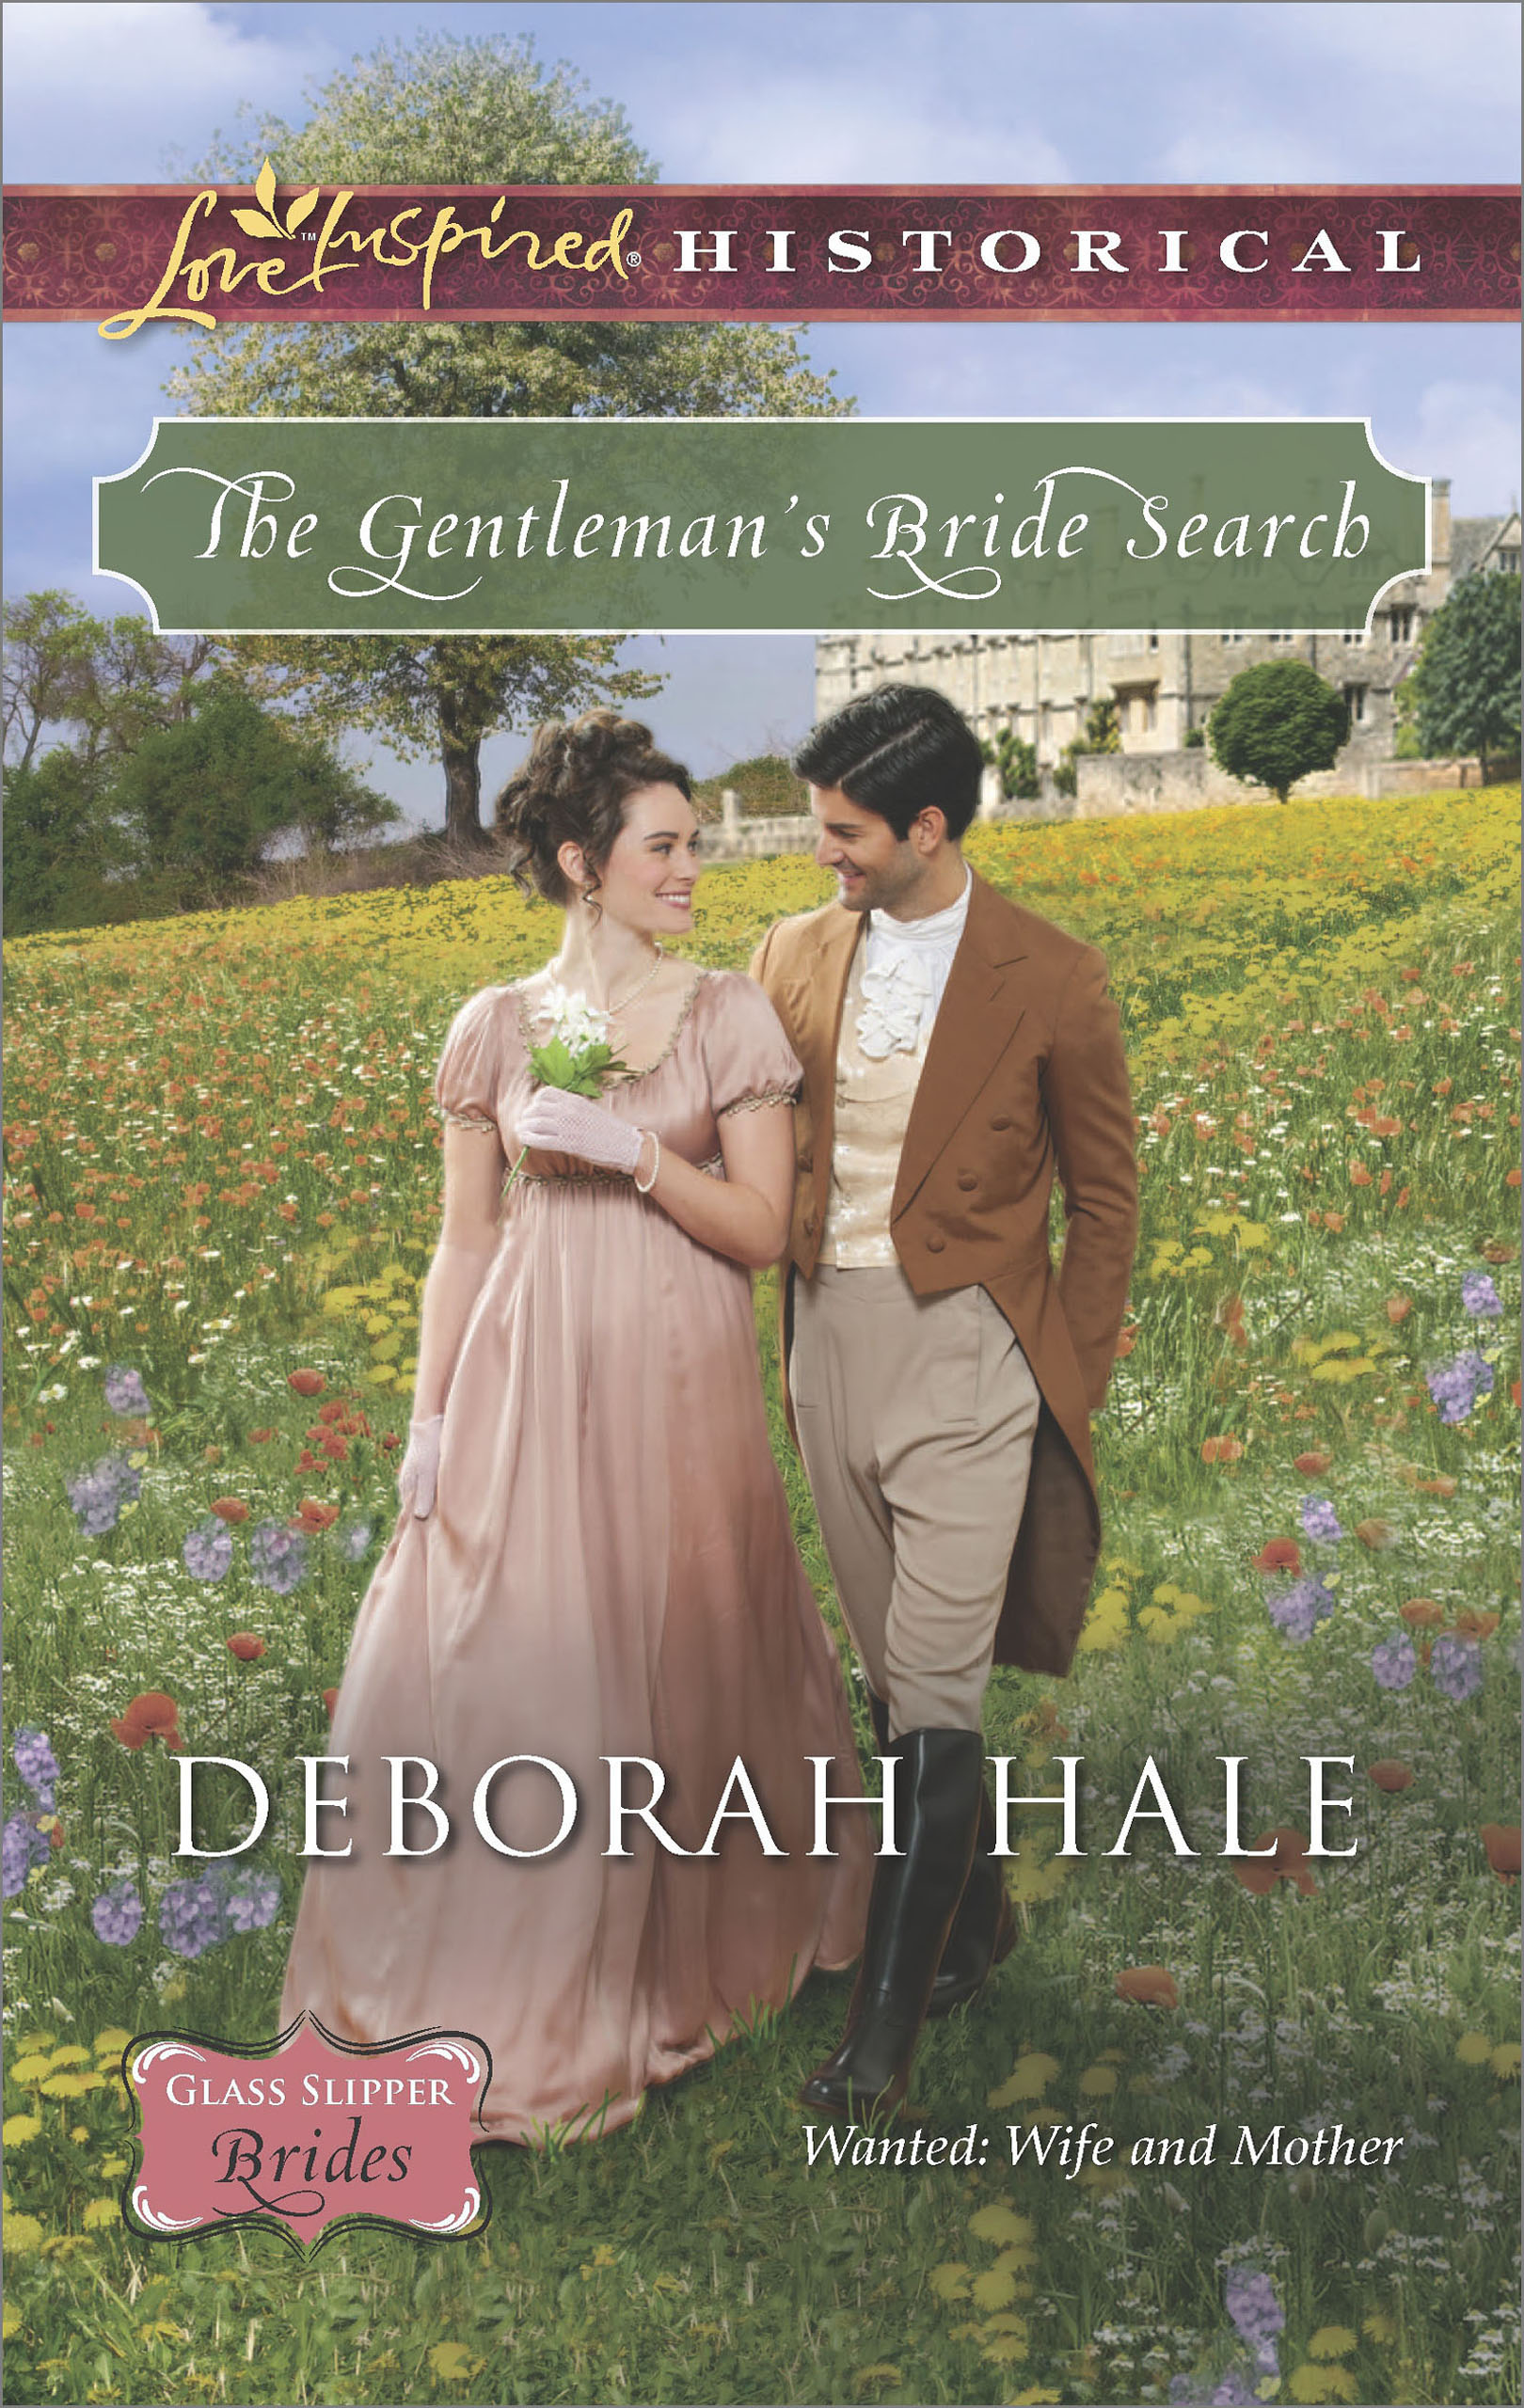 The Gentleman's Bride Search (Mills & Boon Love Inspired Historical) (Glass Slipper Brides - Book 5)